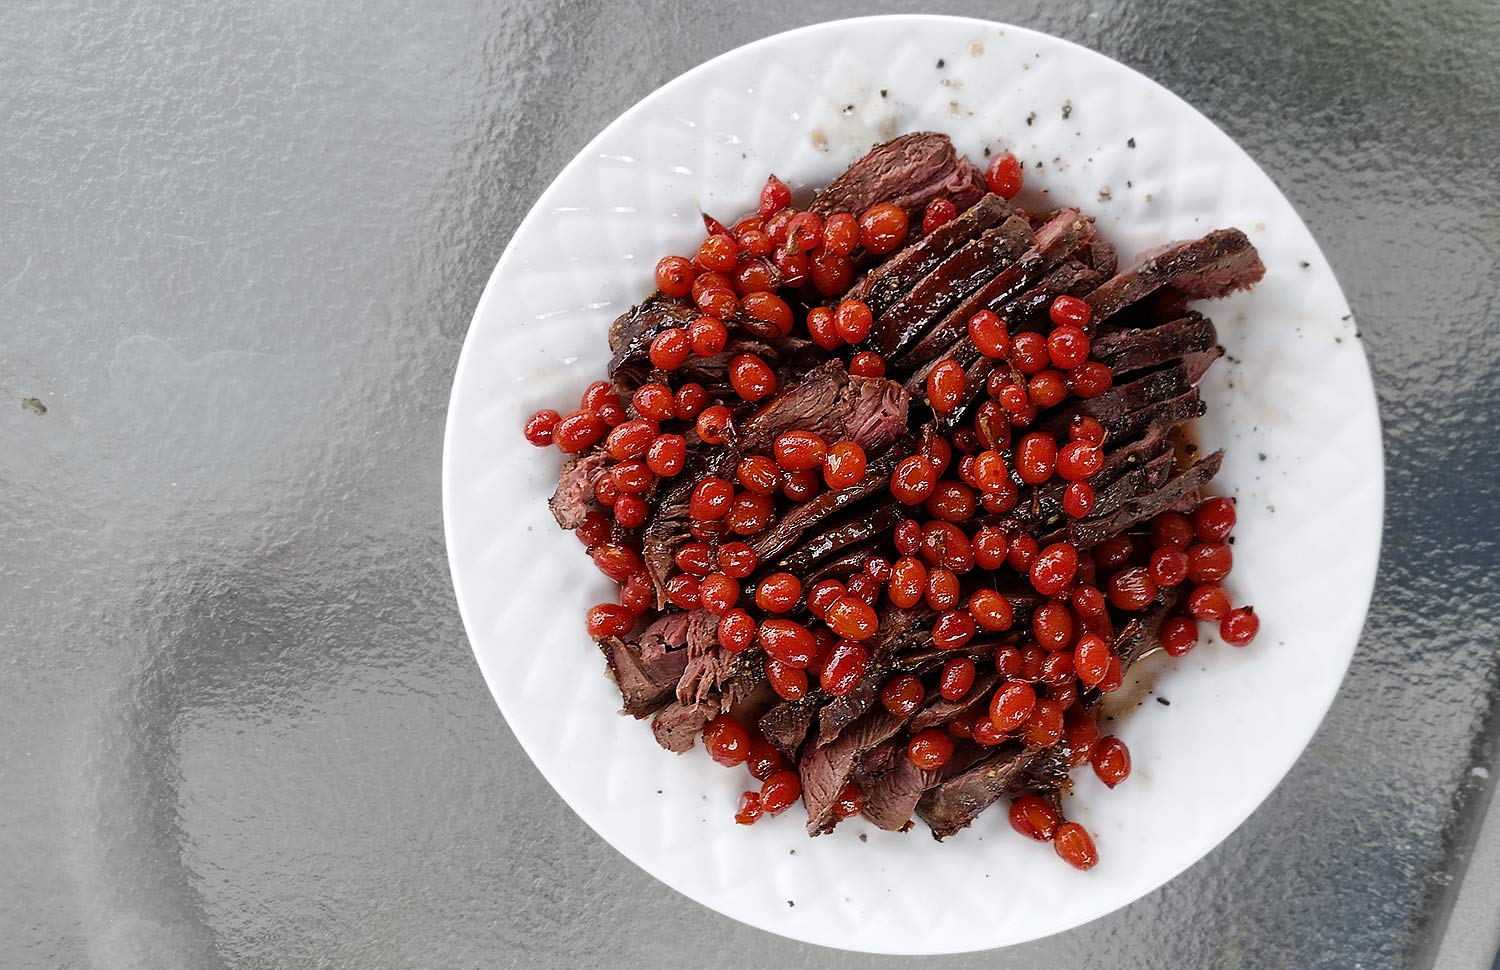 Sage grouse with red currants